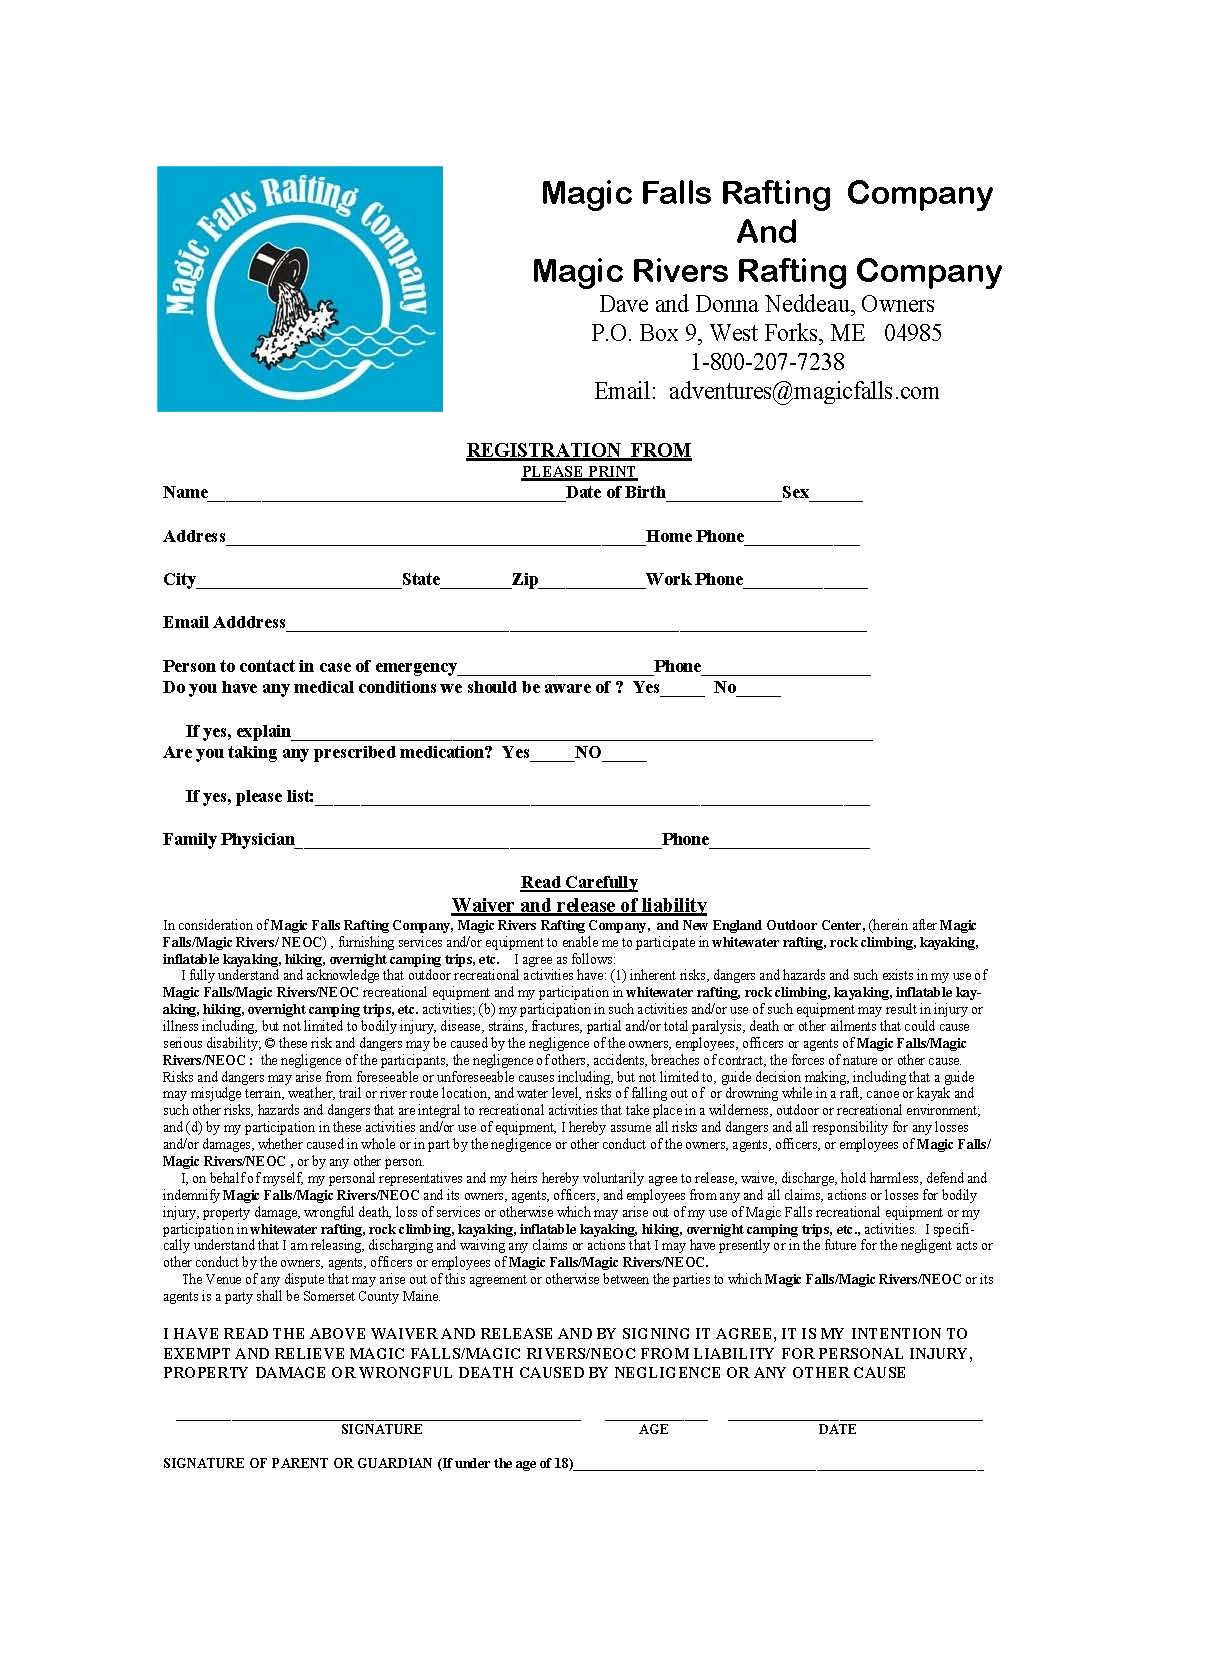 Amazing Beautiful Maine Whitewater Rafting Information For Group Leaders New  ReleaseW Form2 2 Information Release Of Personal